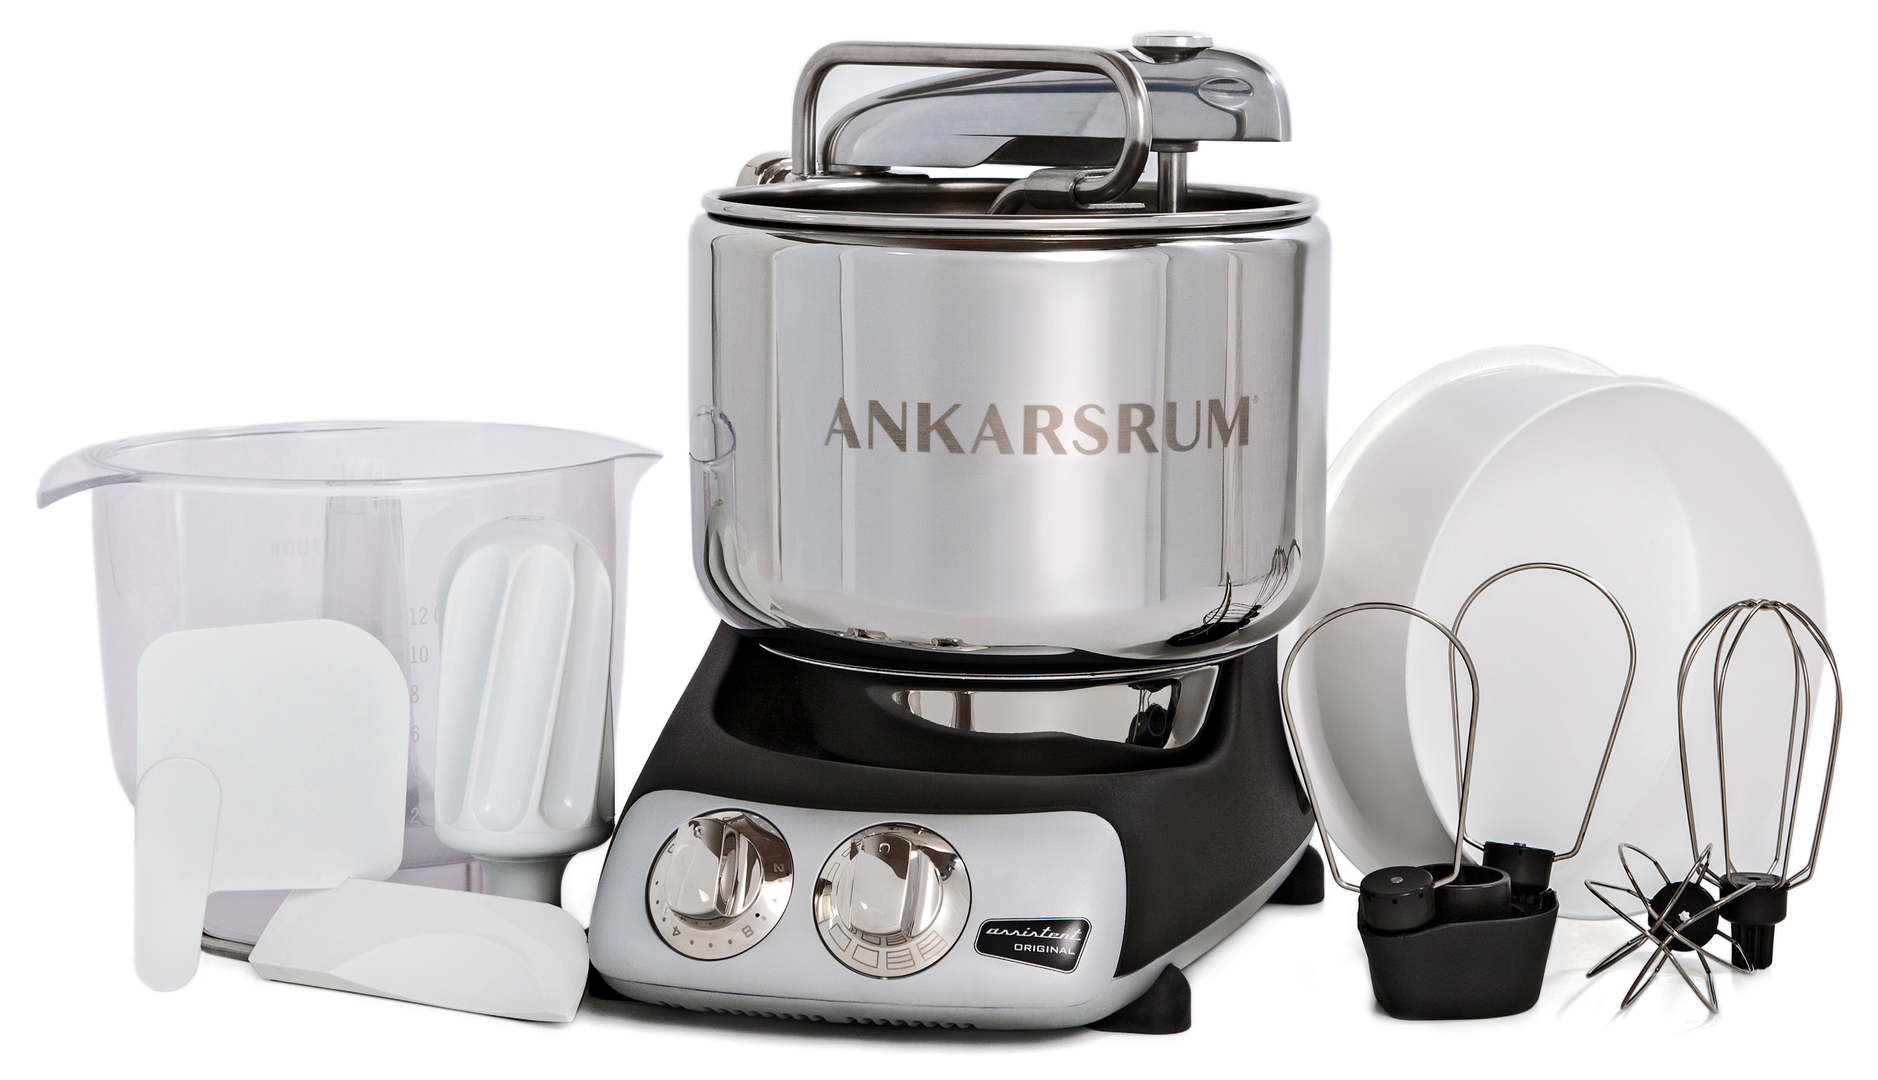 Ankarsrum Original multifunction mixer, Matte Black (2300100)